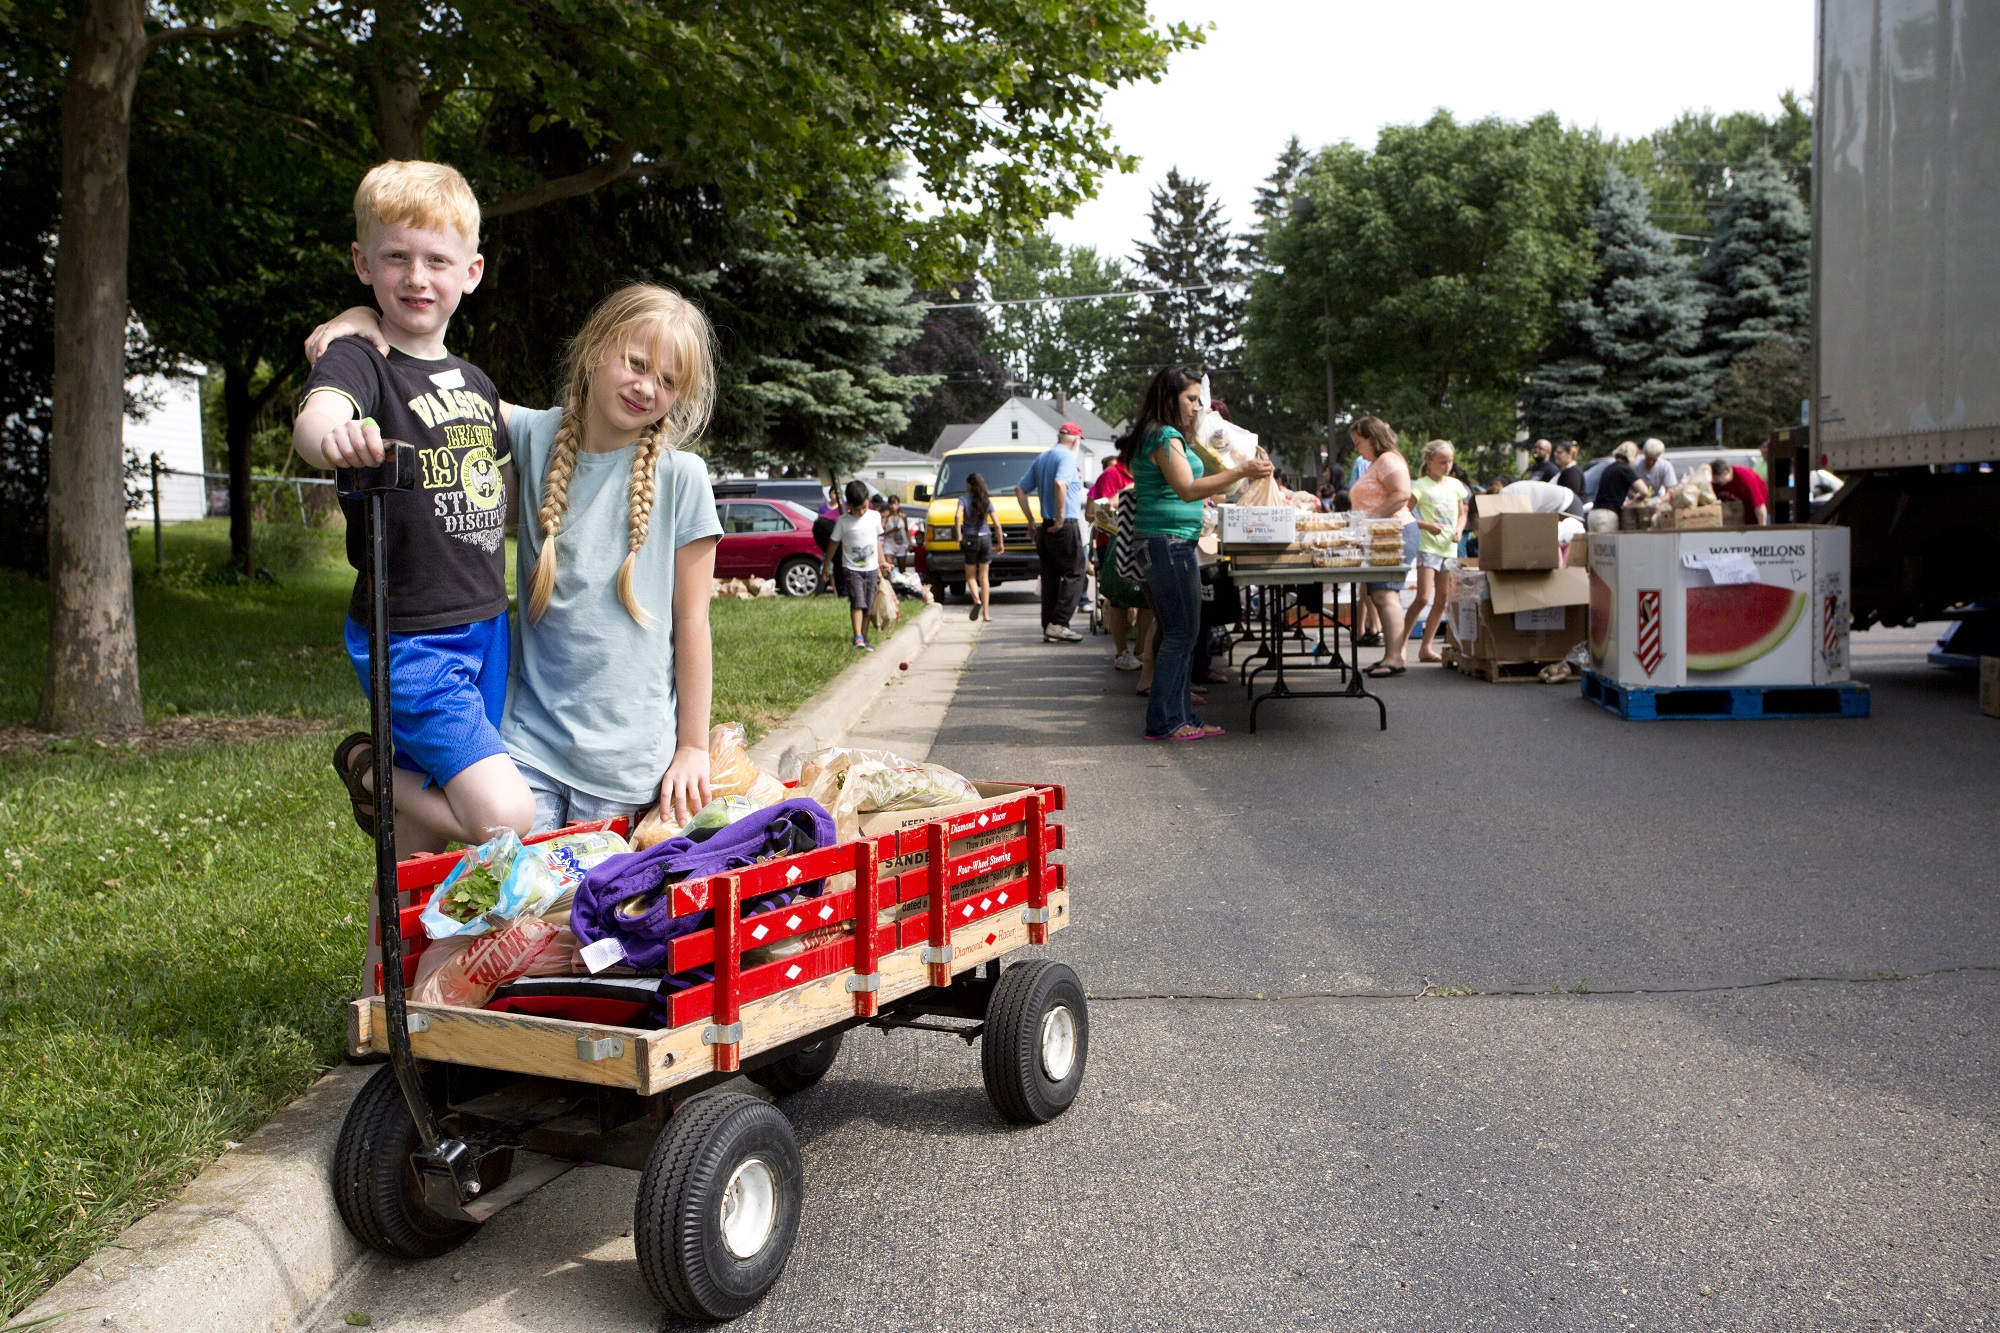 Feeding America West Michigan brought Mobile Pantries to hundreds of sites throughout West Michigan and the Upper Peninsula, including Parkview Elementary in Wyoming, Mich. (Photo Credit: Feeding America)